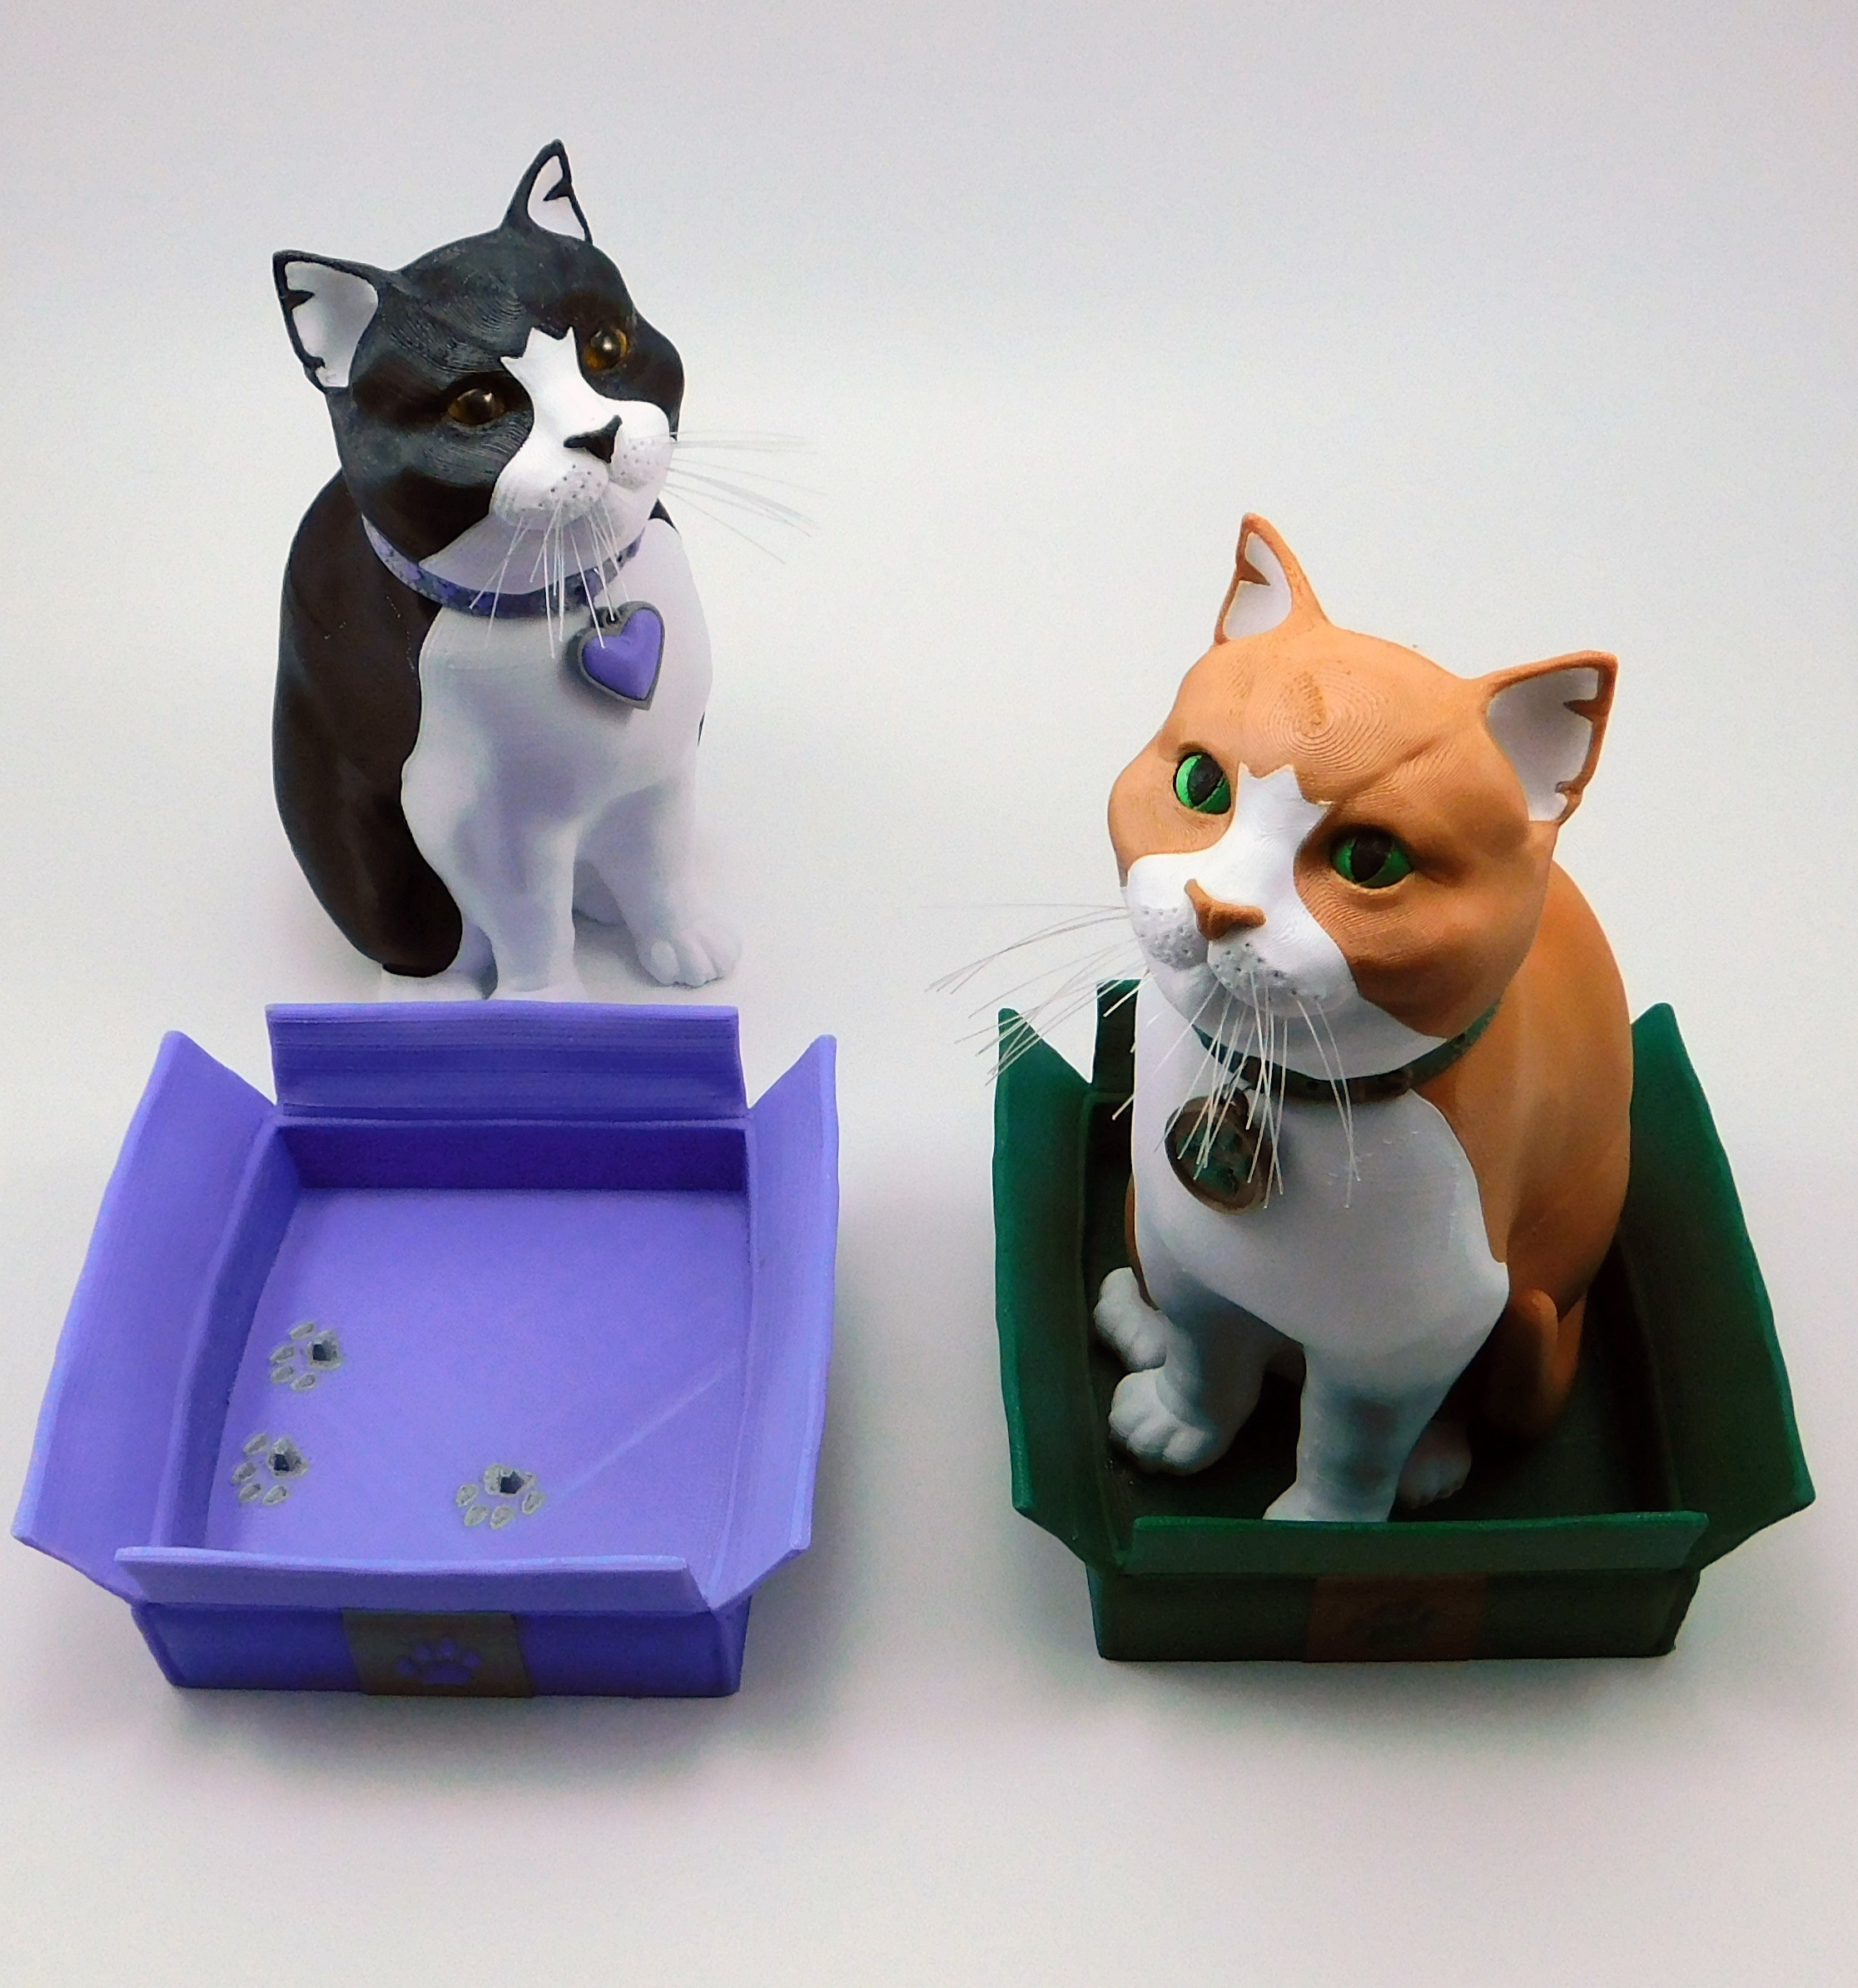 cats_and_boxes.jpg Download STL file Schrodinky: British Shorthair Cat in a Box – 3D Printable, Multi Part Model - MULTI EXTRUSION PACKAGE • Object to 3D print, loubie